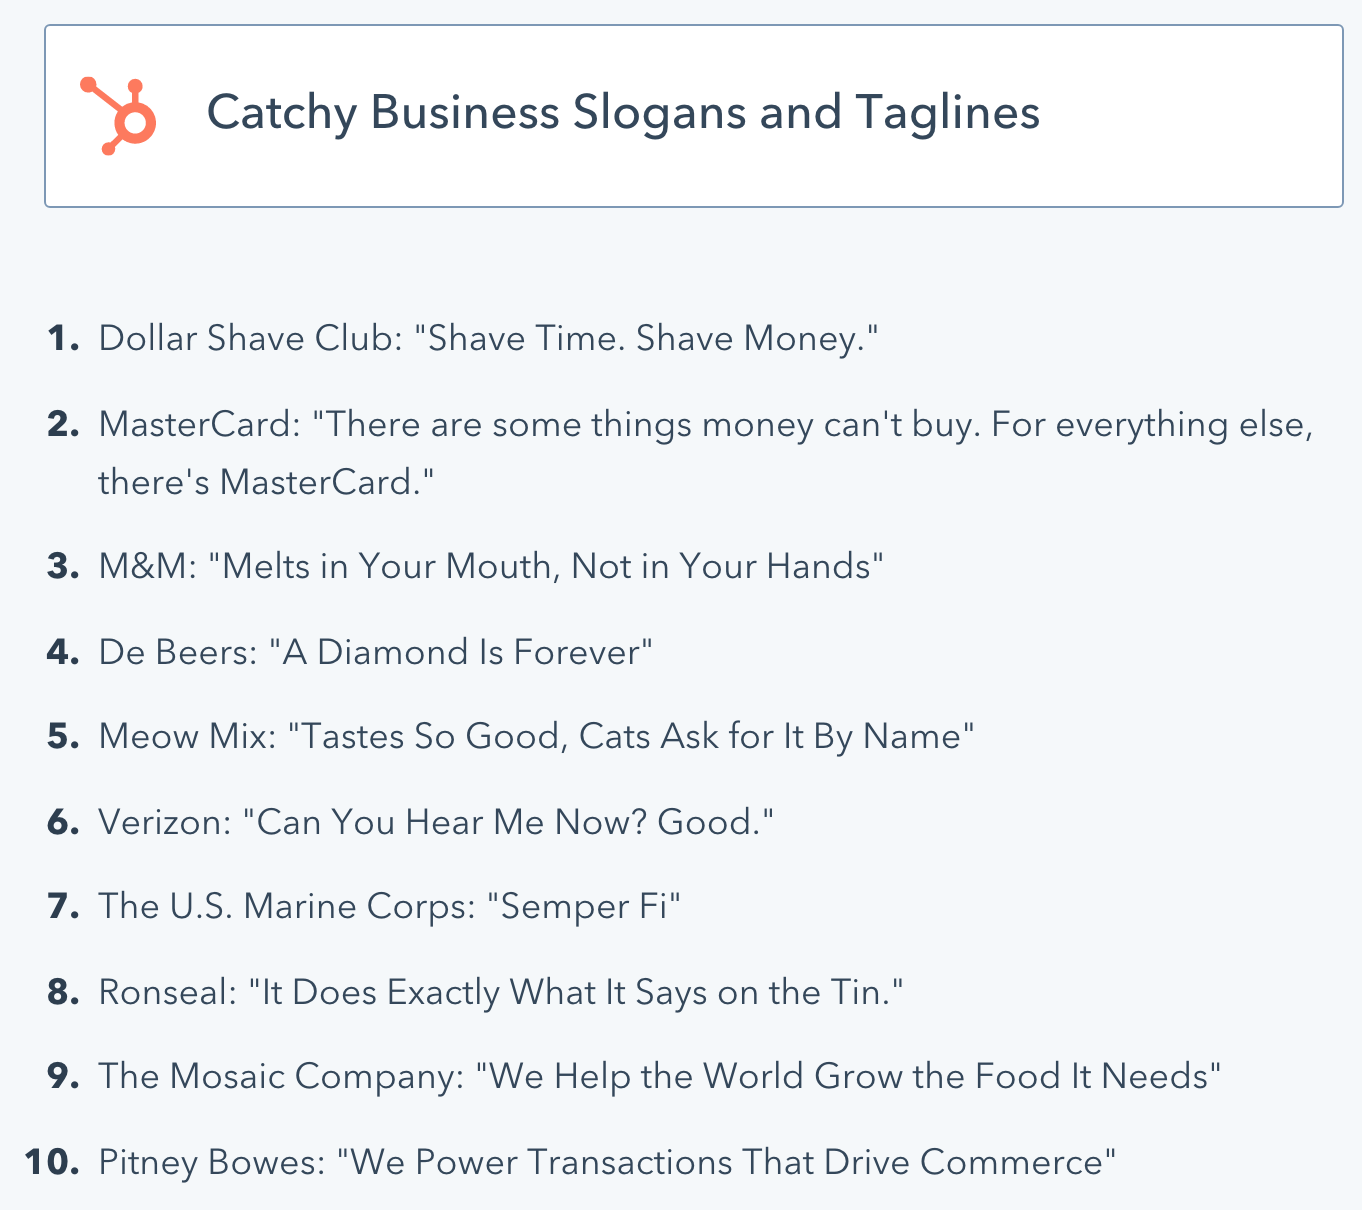 Screenshot showing catchy business slogans and taglines